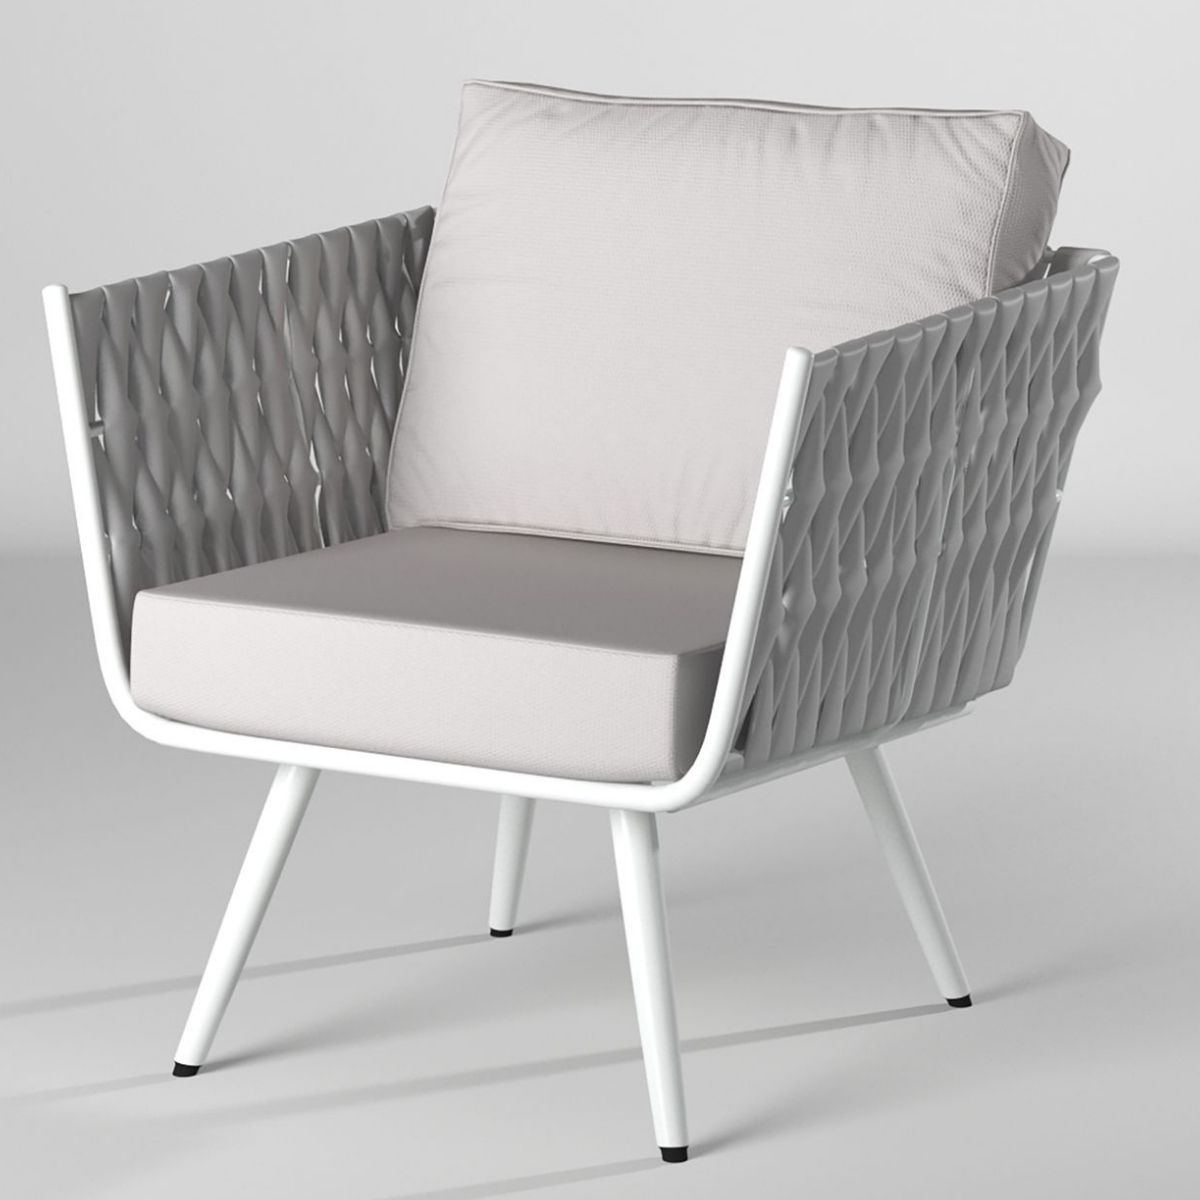 Milano White Outdoor One-Seater Sofa with Cushions